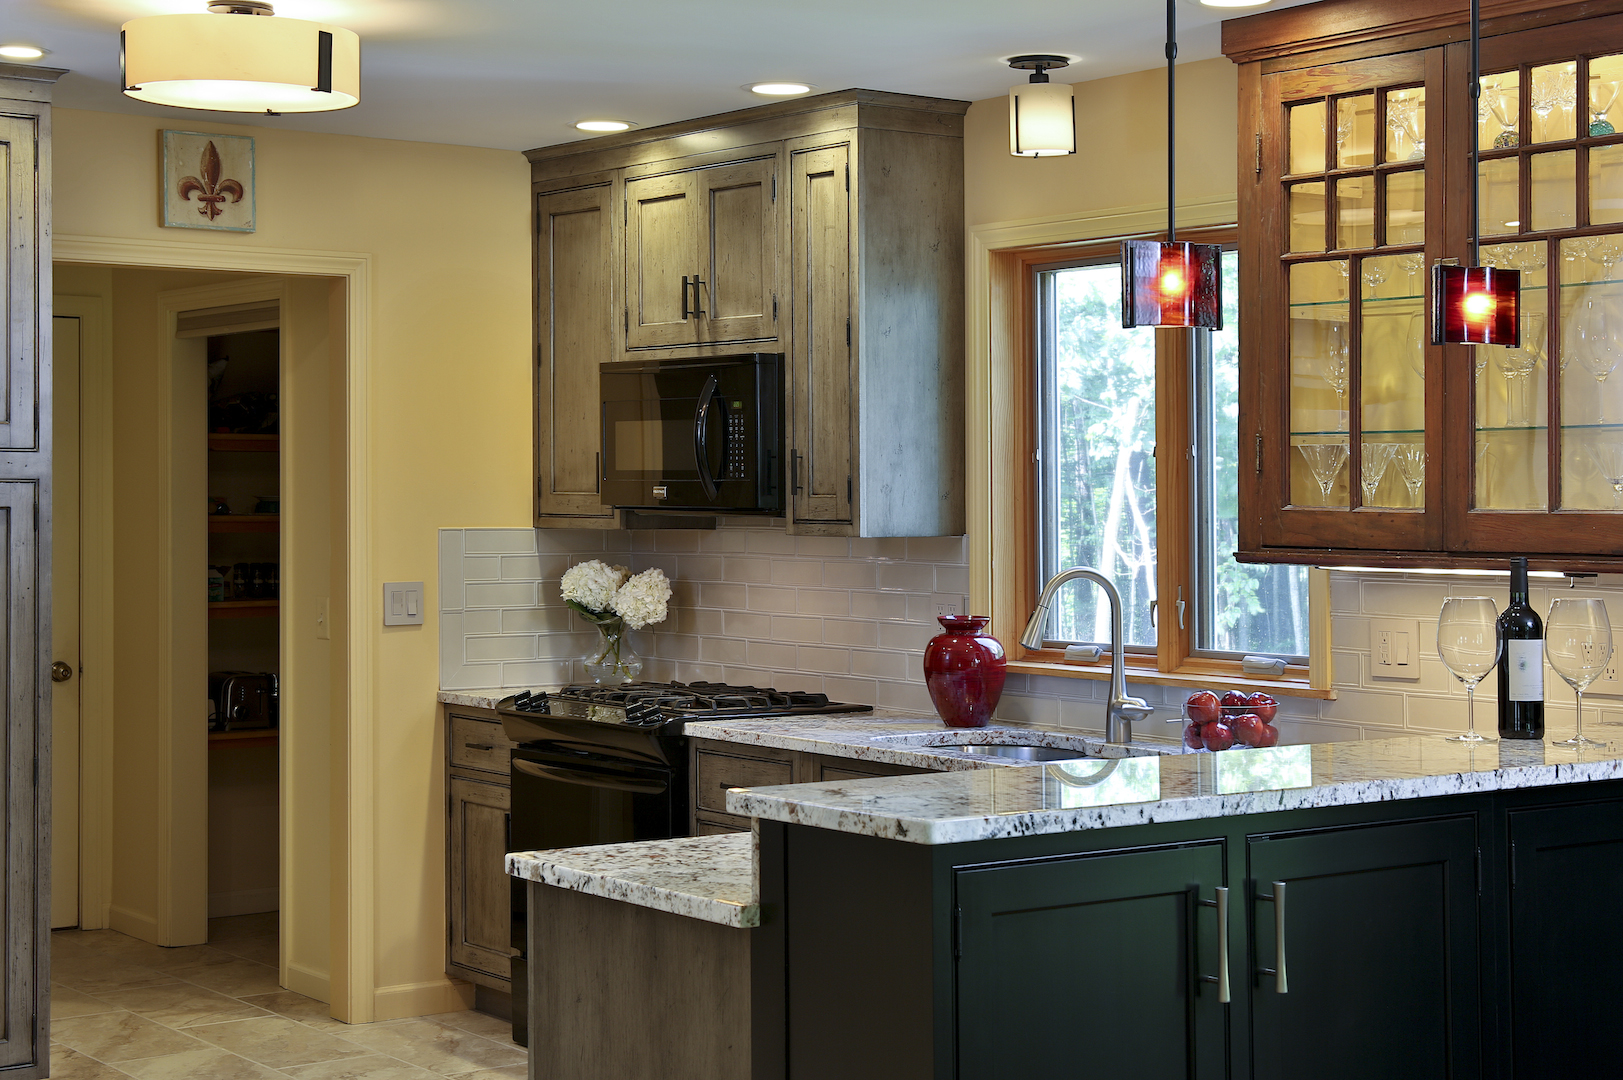 Case study western massachusetts bungalow kdz designs interior - Western Mass Kitchen Update